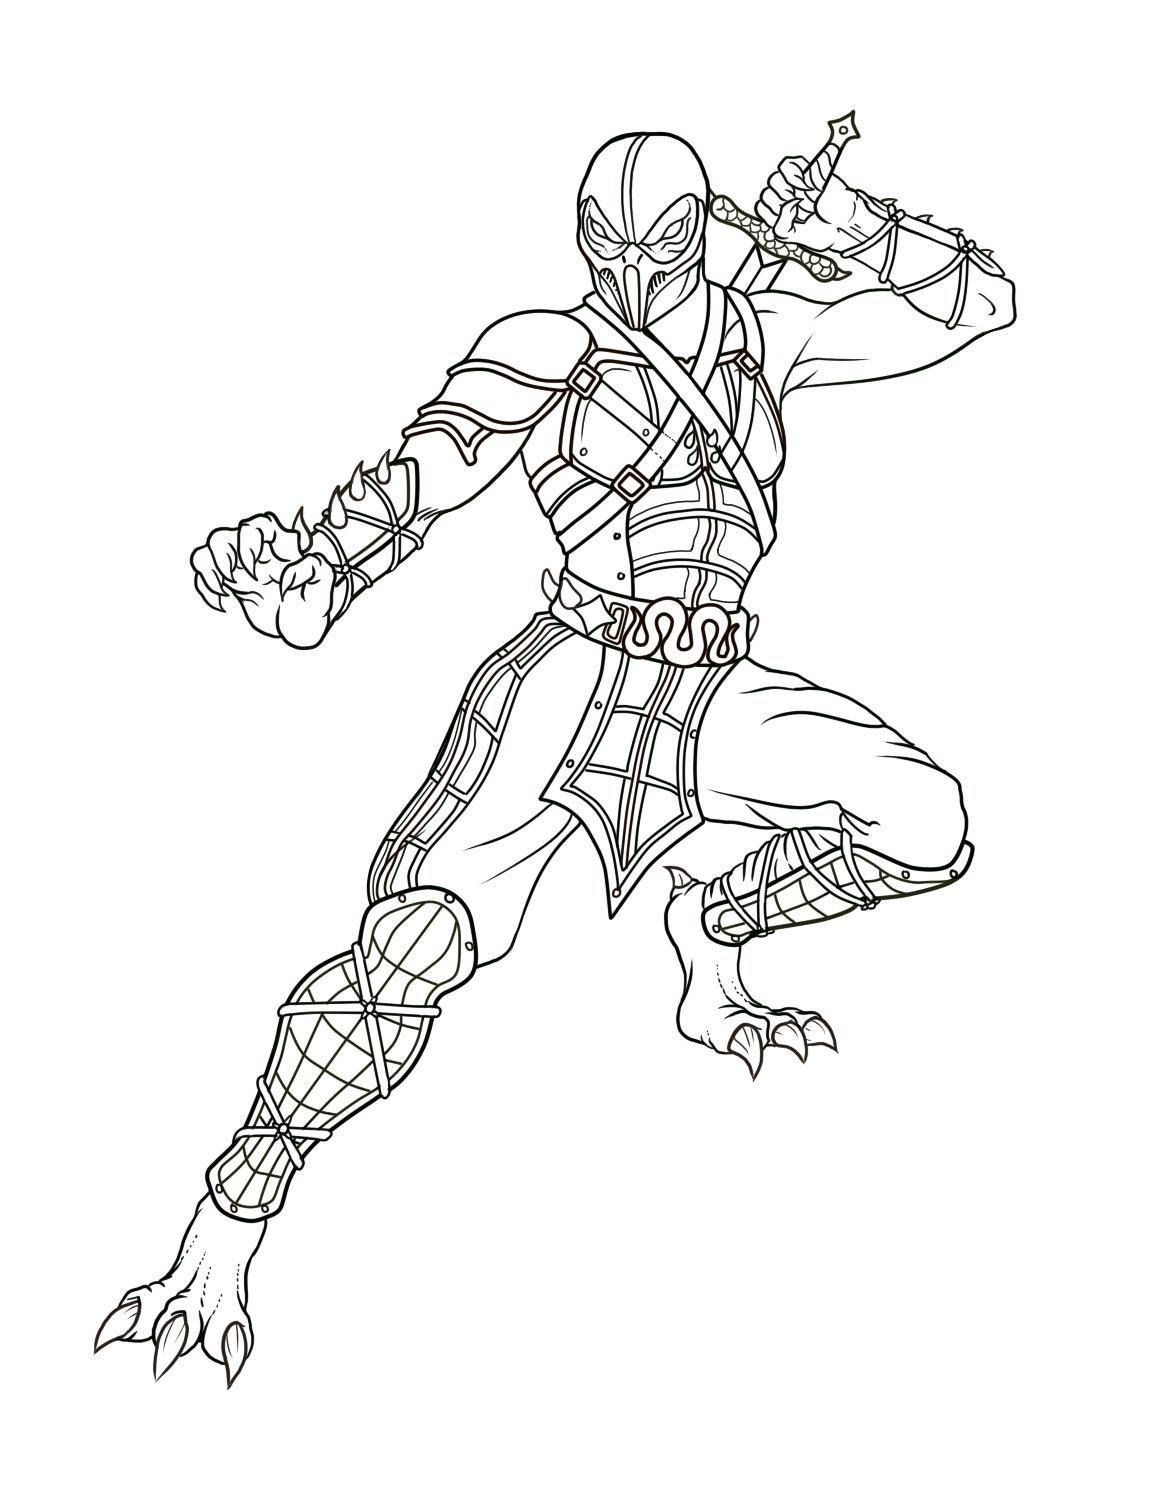 Mortal Kombat Coloring Pages Coloring Pages Coloring Pages For